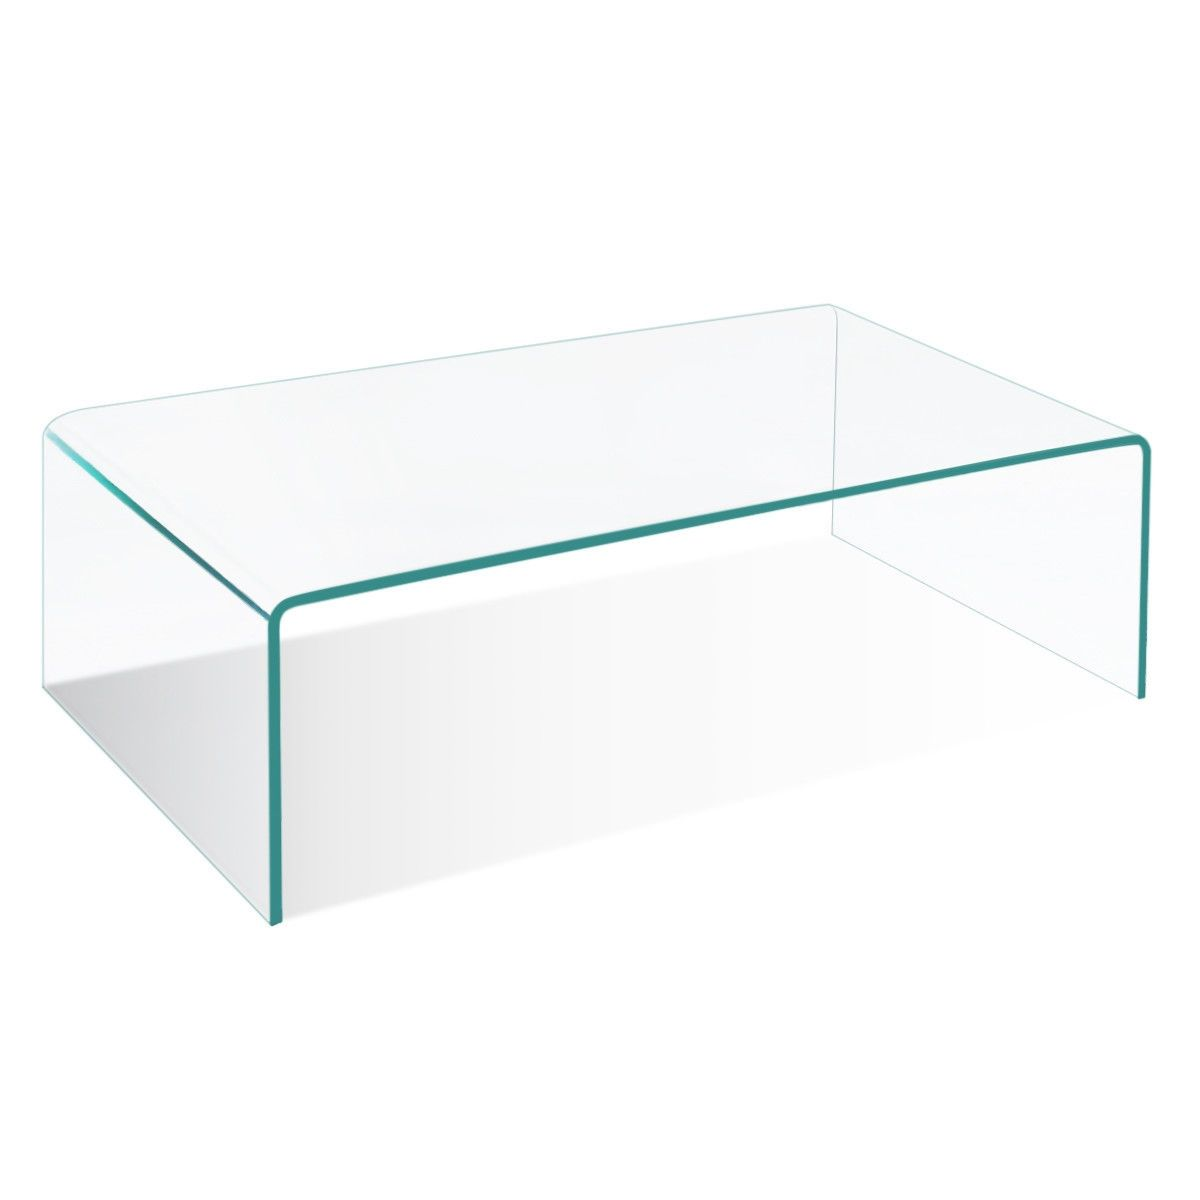 42 0 X 19 7 Tempered Glass Coffee Table Coffee Table Rectangle Modern Glass Coffee Table Glass Coffee Table [ 1200 x 1200 Pixel ]